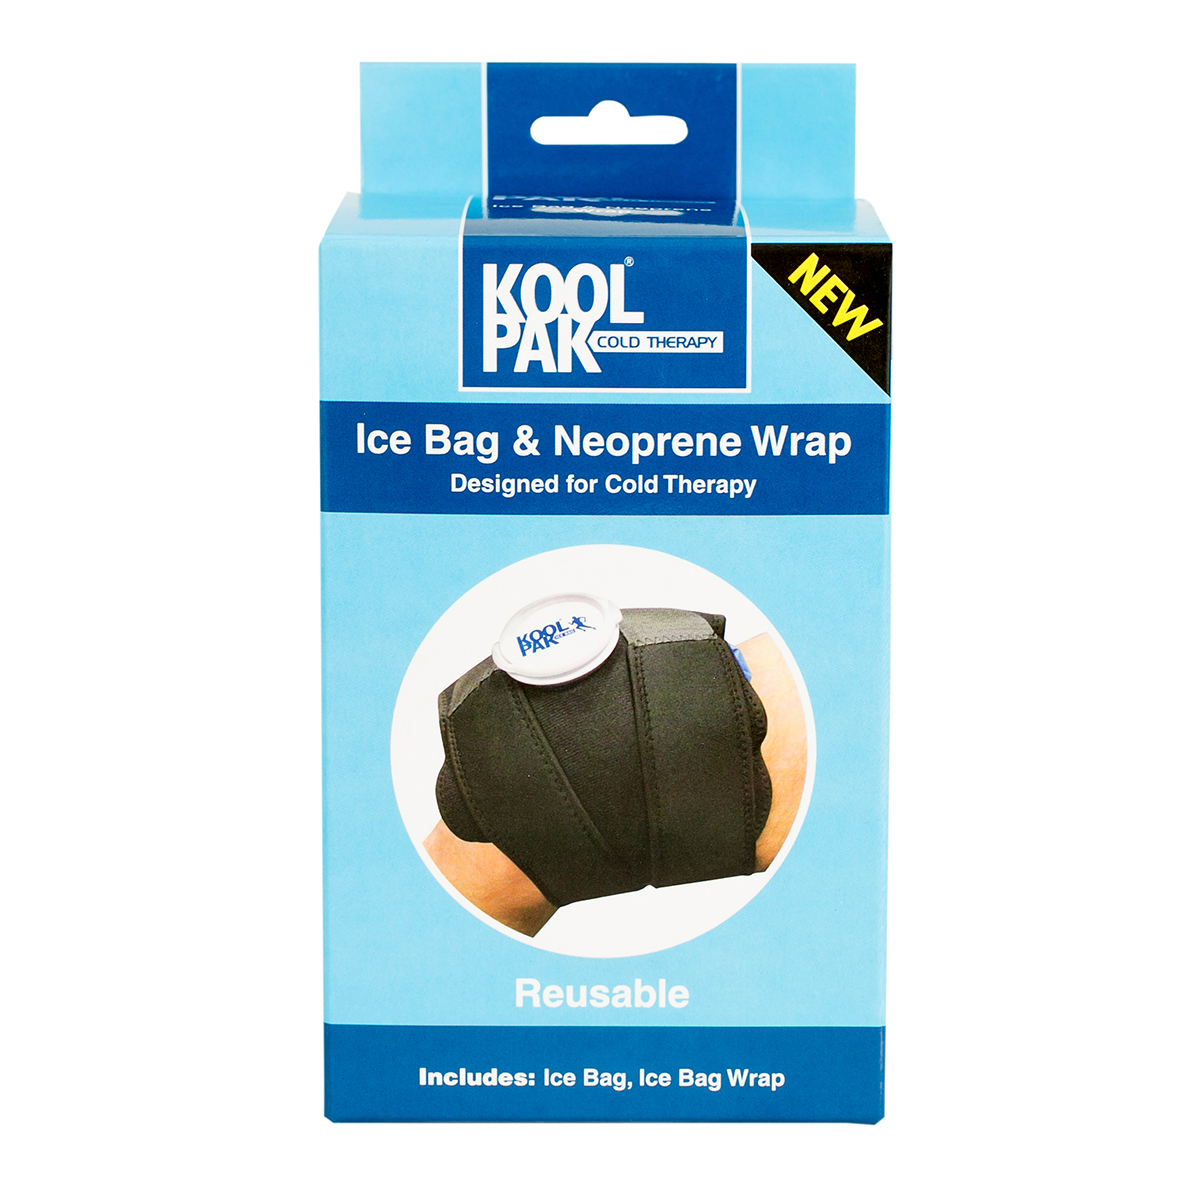 Koolpak® Ice Bag and Neoprene Wrap